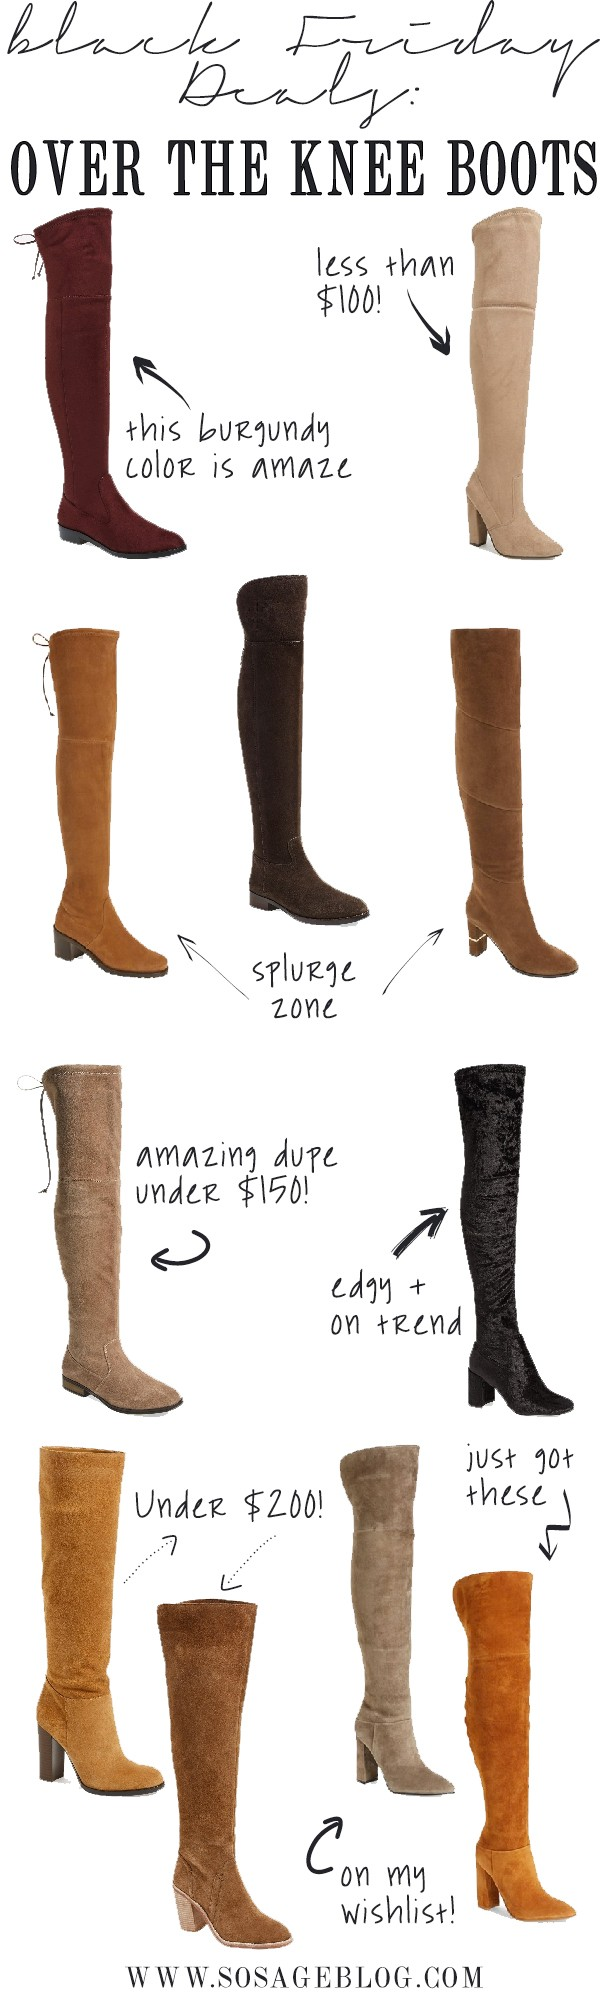 13e655e9797 Early Black Friday Sales: Save HUGE on Over the Knee Boots!